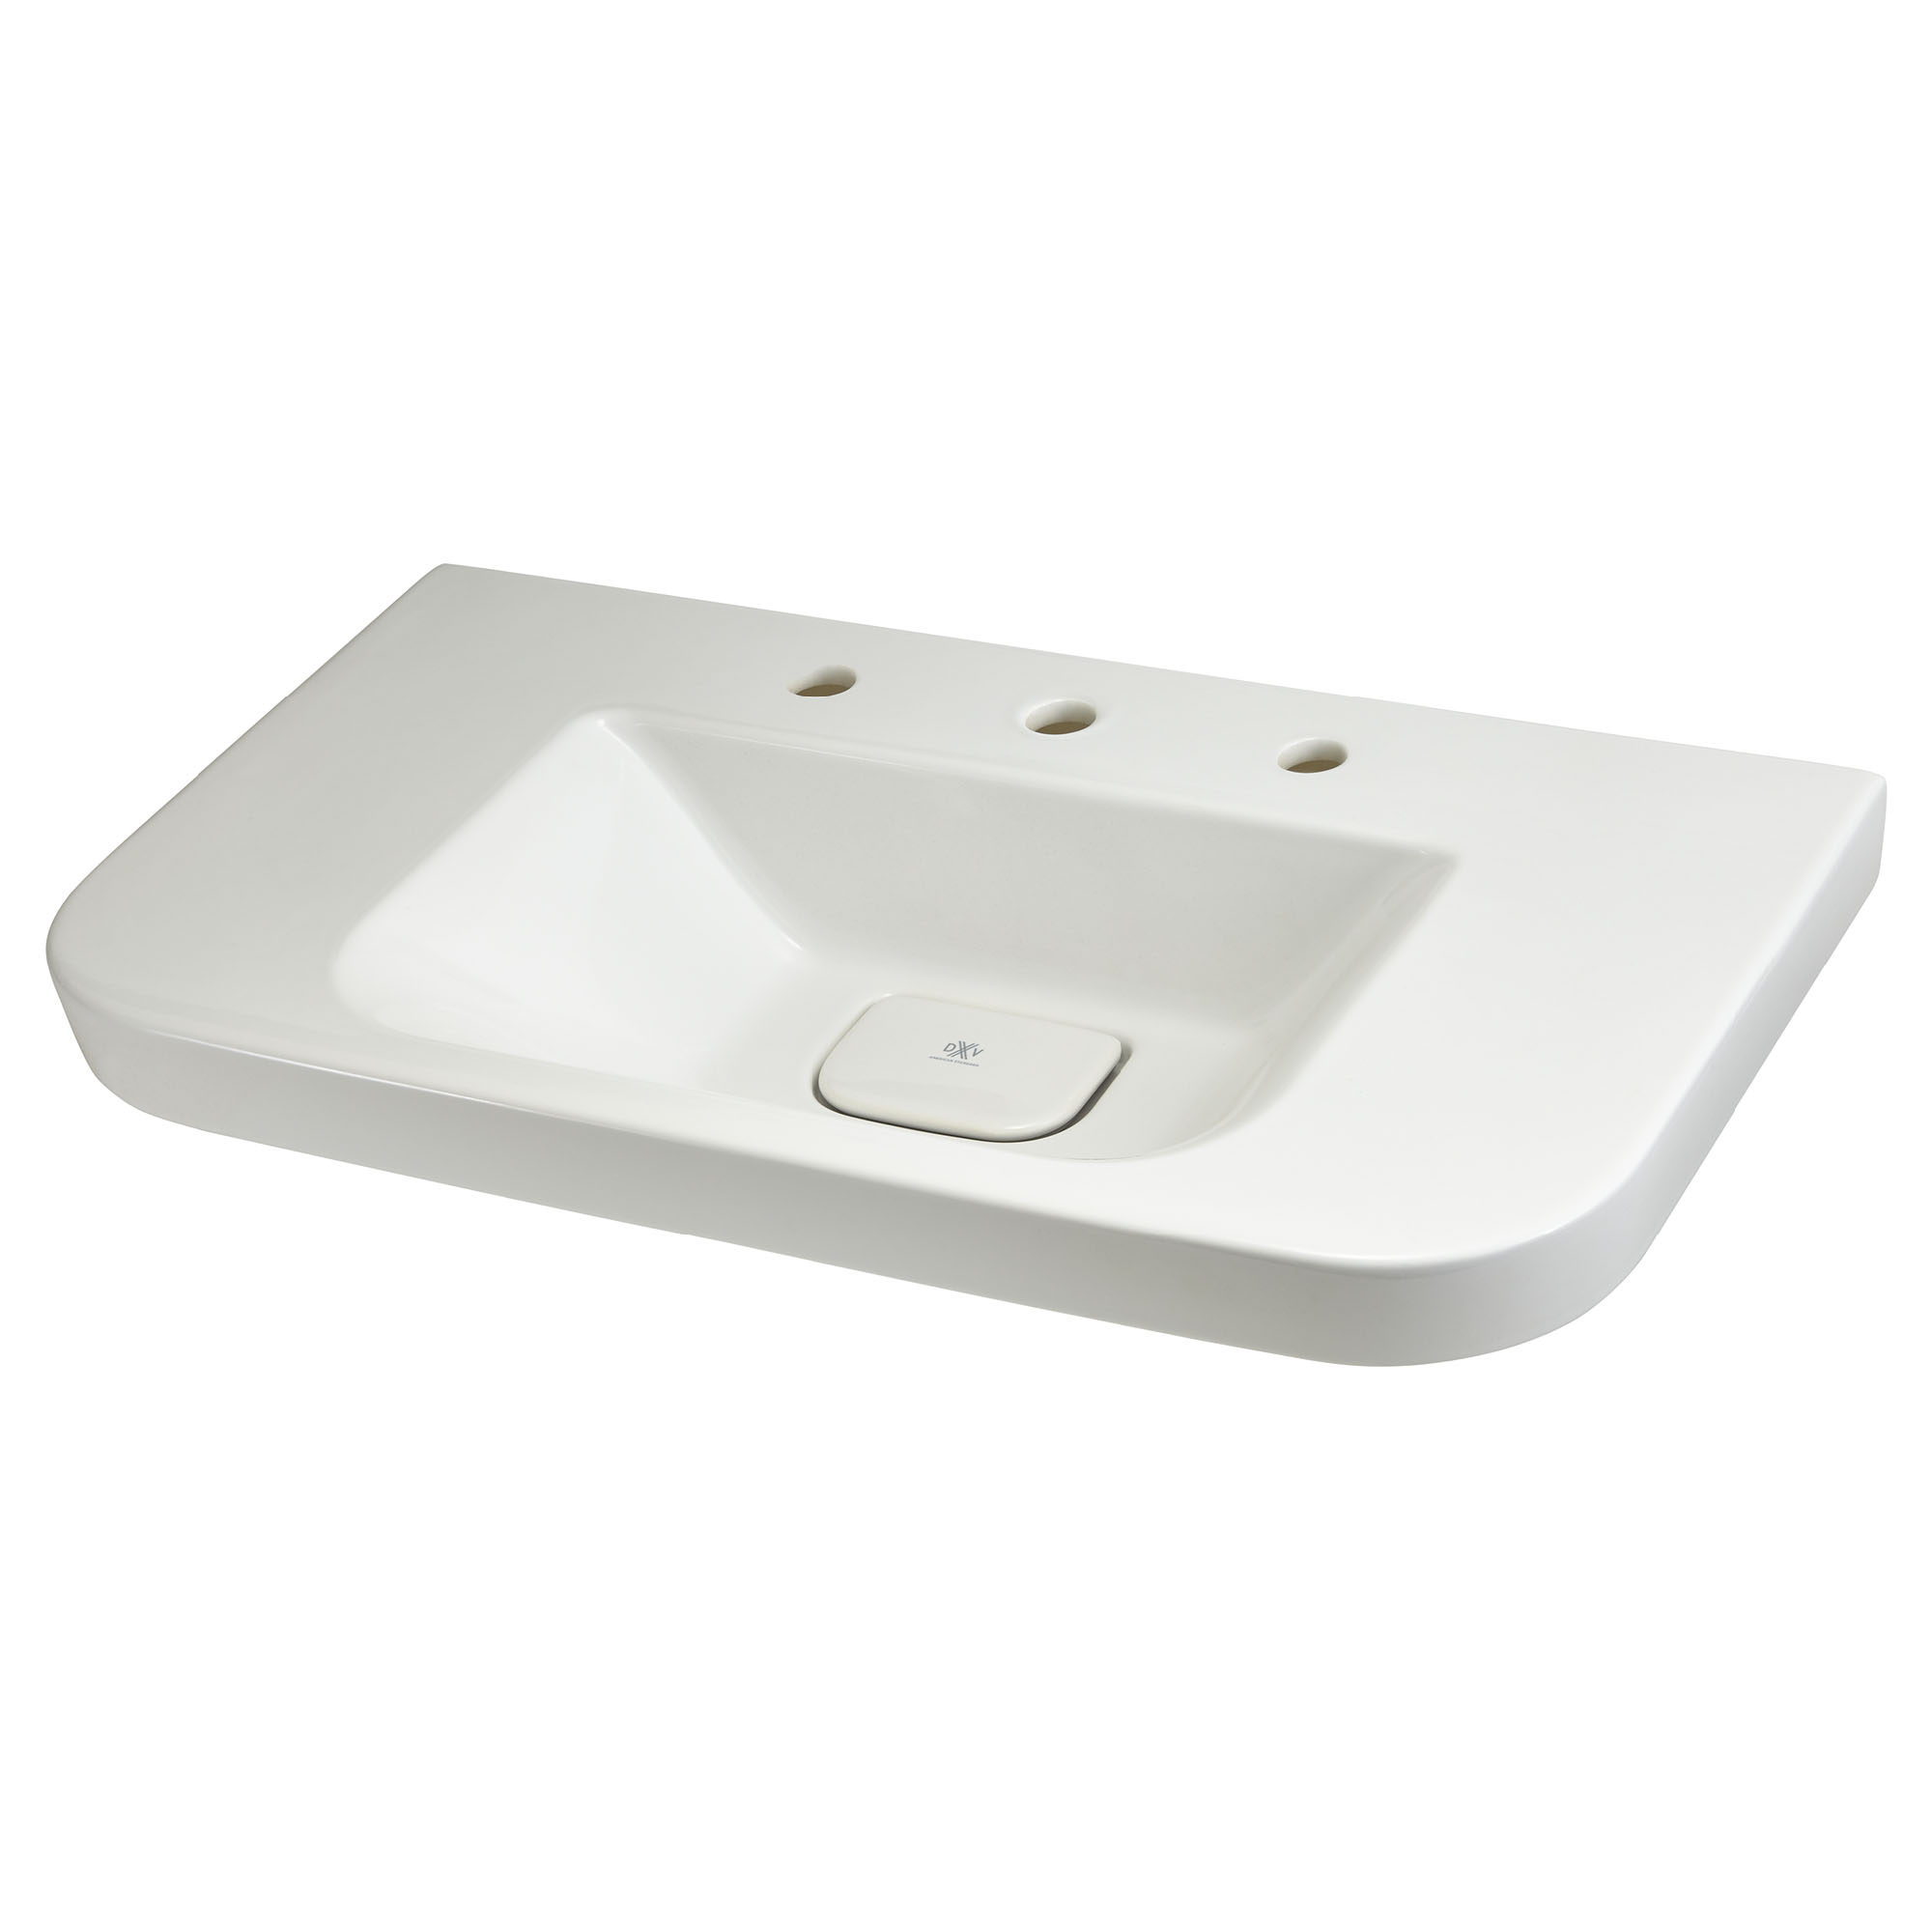 Equility 33 Inch Wall- Mount Bathroom Sink – Three Faucet Holes